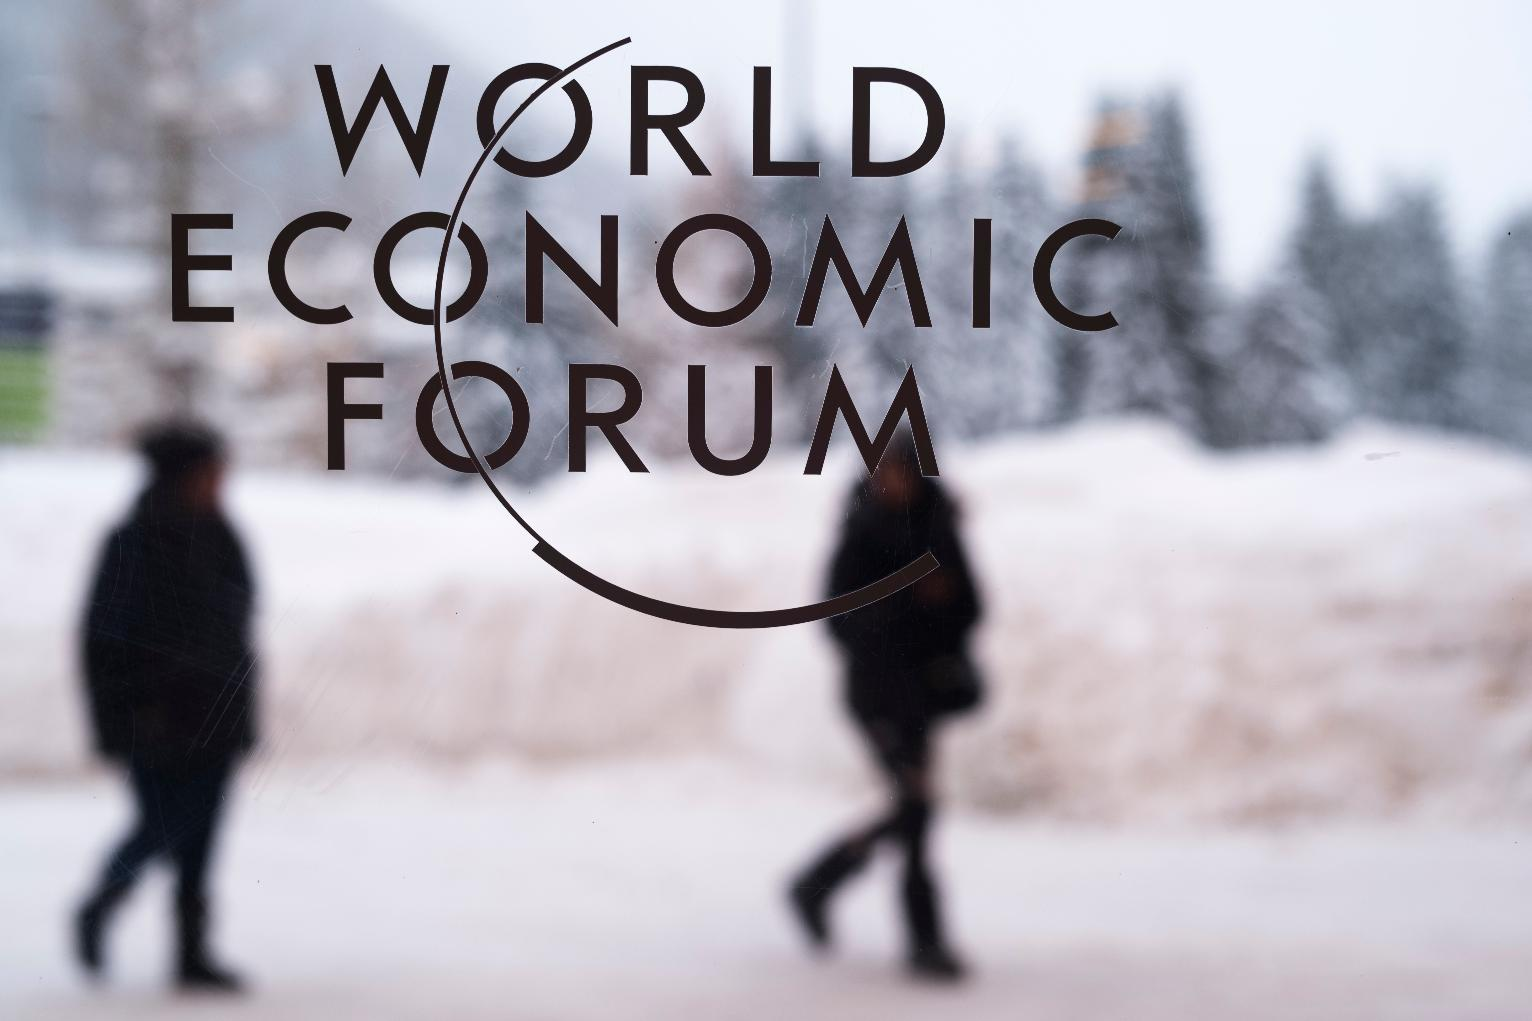 Diplomacy >> Davos Diplomacy Scene Not Exactly a Natural Fit for Trump | Entertainment News | US News